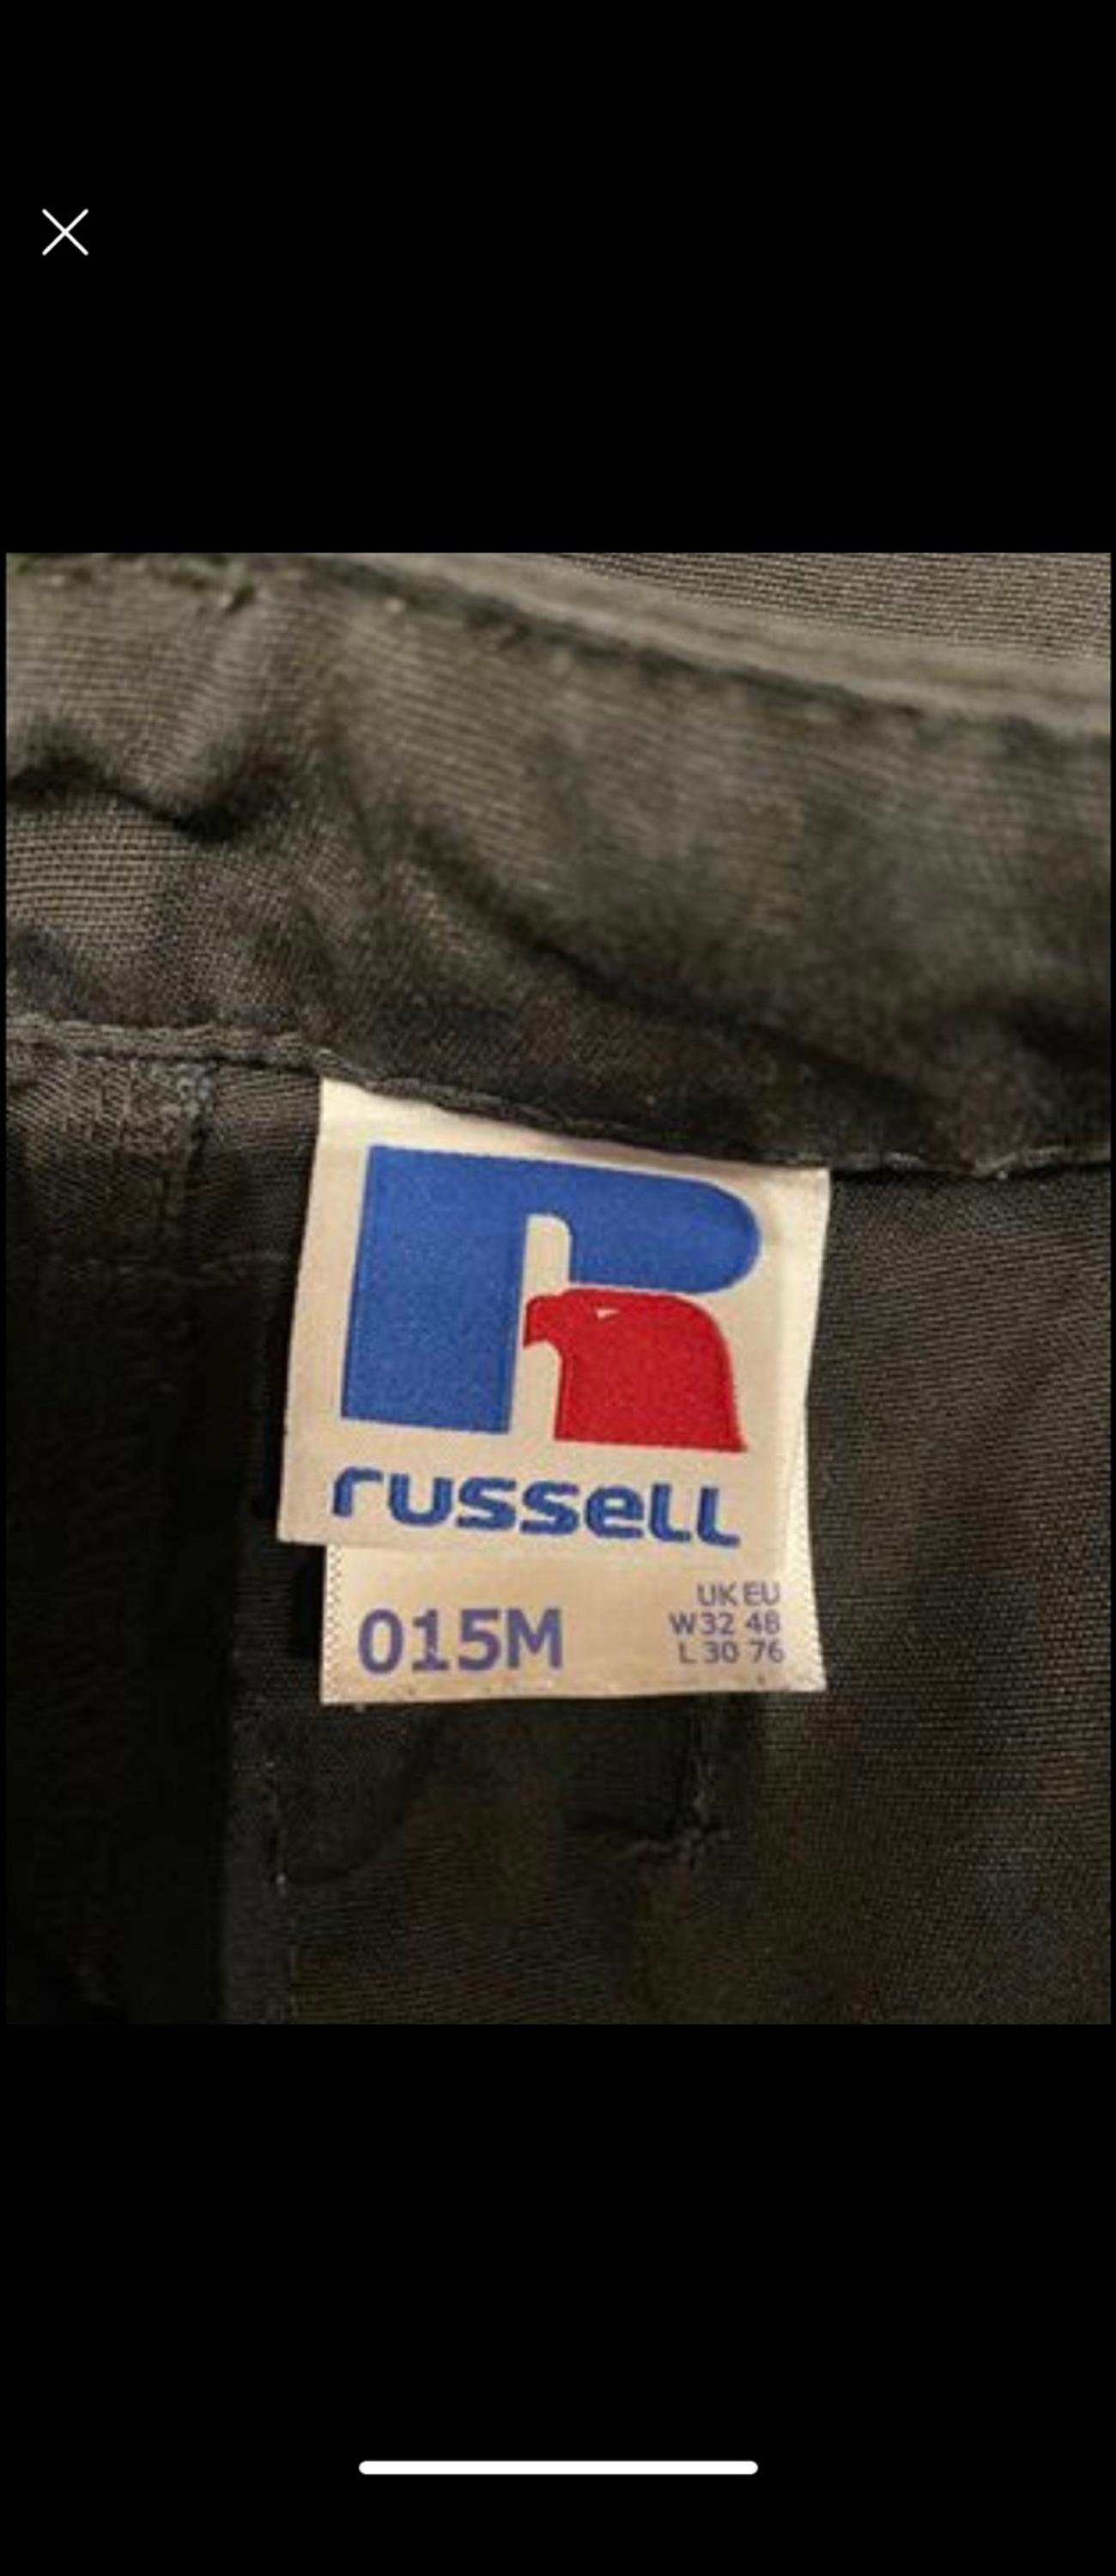 In excellent condition, 4 pairs of Russell Heavy duty work trousers, bought for £30 each. Only worn a few times still in excellent condition.